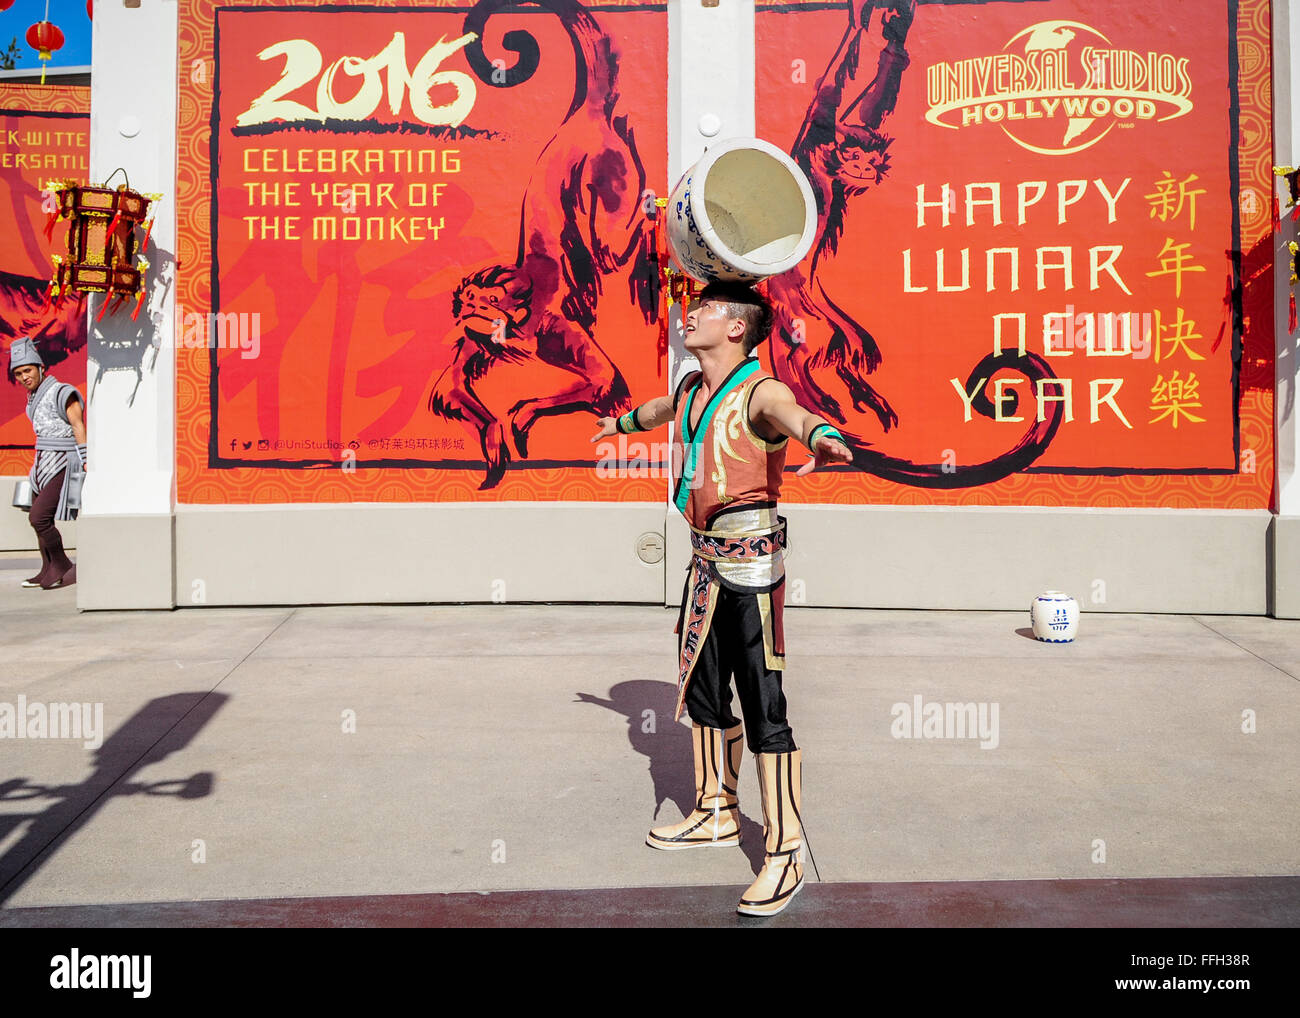 Los Angeles, California, USA. 13th Feb, 2016. A man performs during a celebration for promoting the 2016 China-US Tourism Year at Universal Studios Hollywood in Universal City, Los Angeles, California, on Feb. 13, 2016. The Universal Studios Hollywood together with the Consulate-General of China in Los Angeles and the China National Tourist Office in Los Angeles celebrated the Year of the Monkey and promoted the 2016 China-US Tourism Year at Universal Studios Hollywood on Saturday. Credit:  Zhang Chaoqun/Xinhua/Alamy Live News Stock Photo